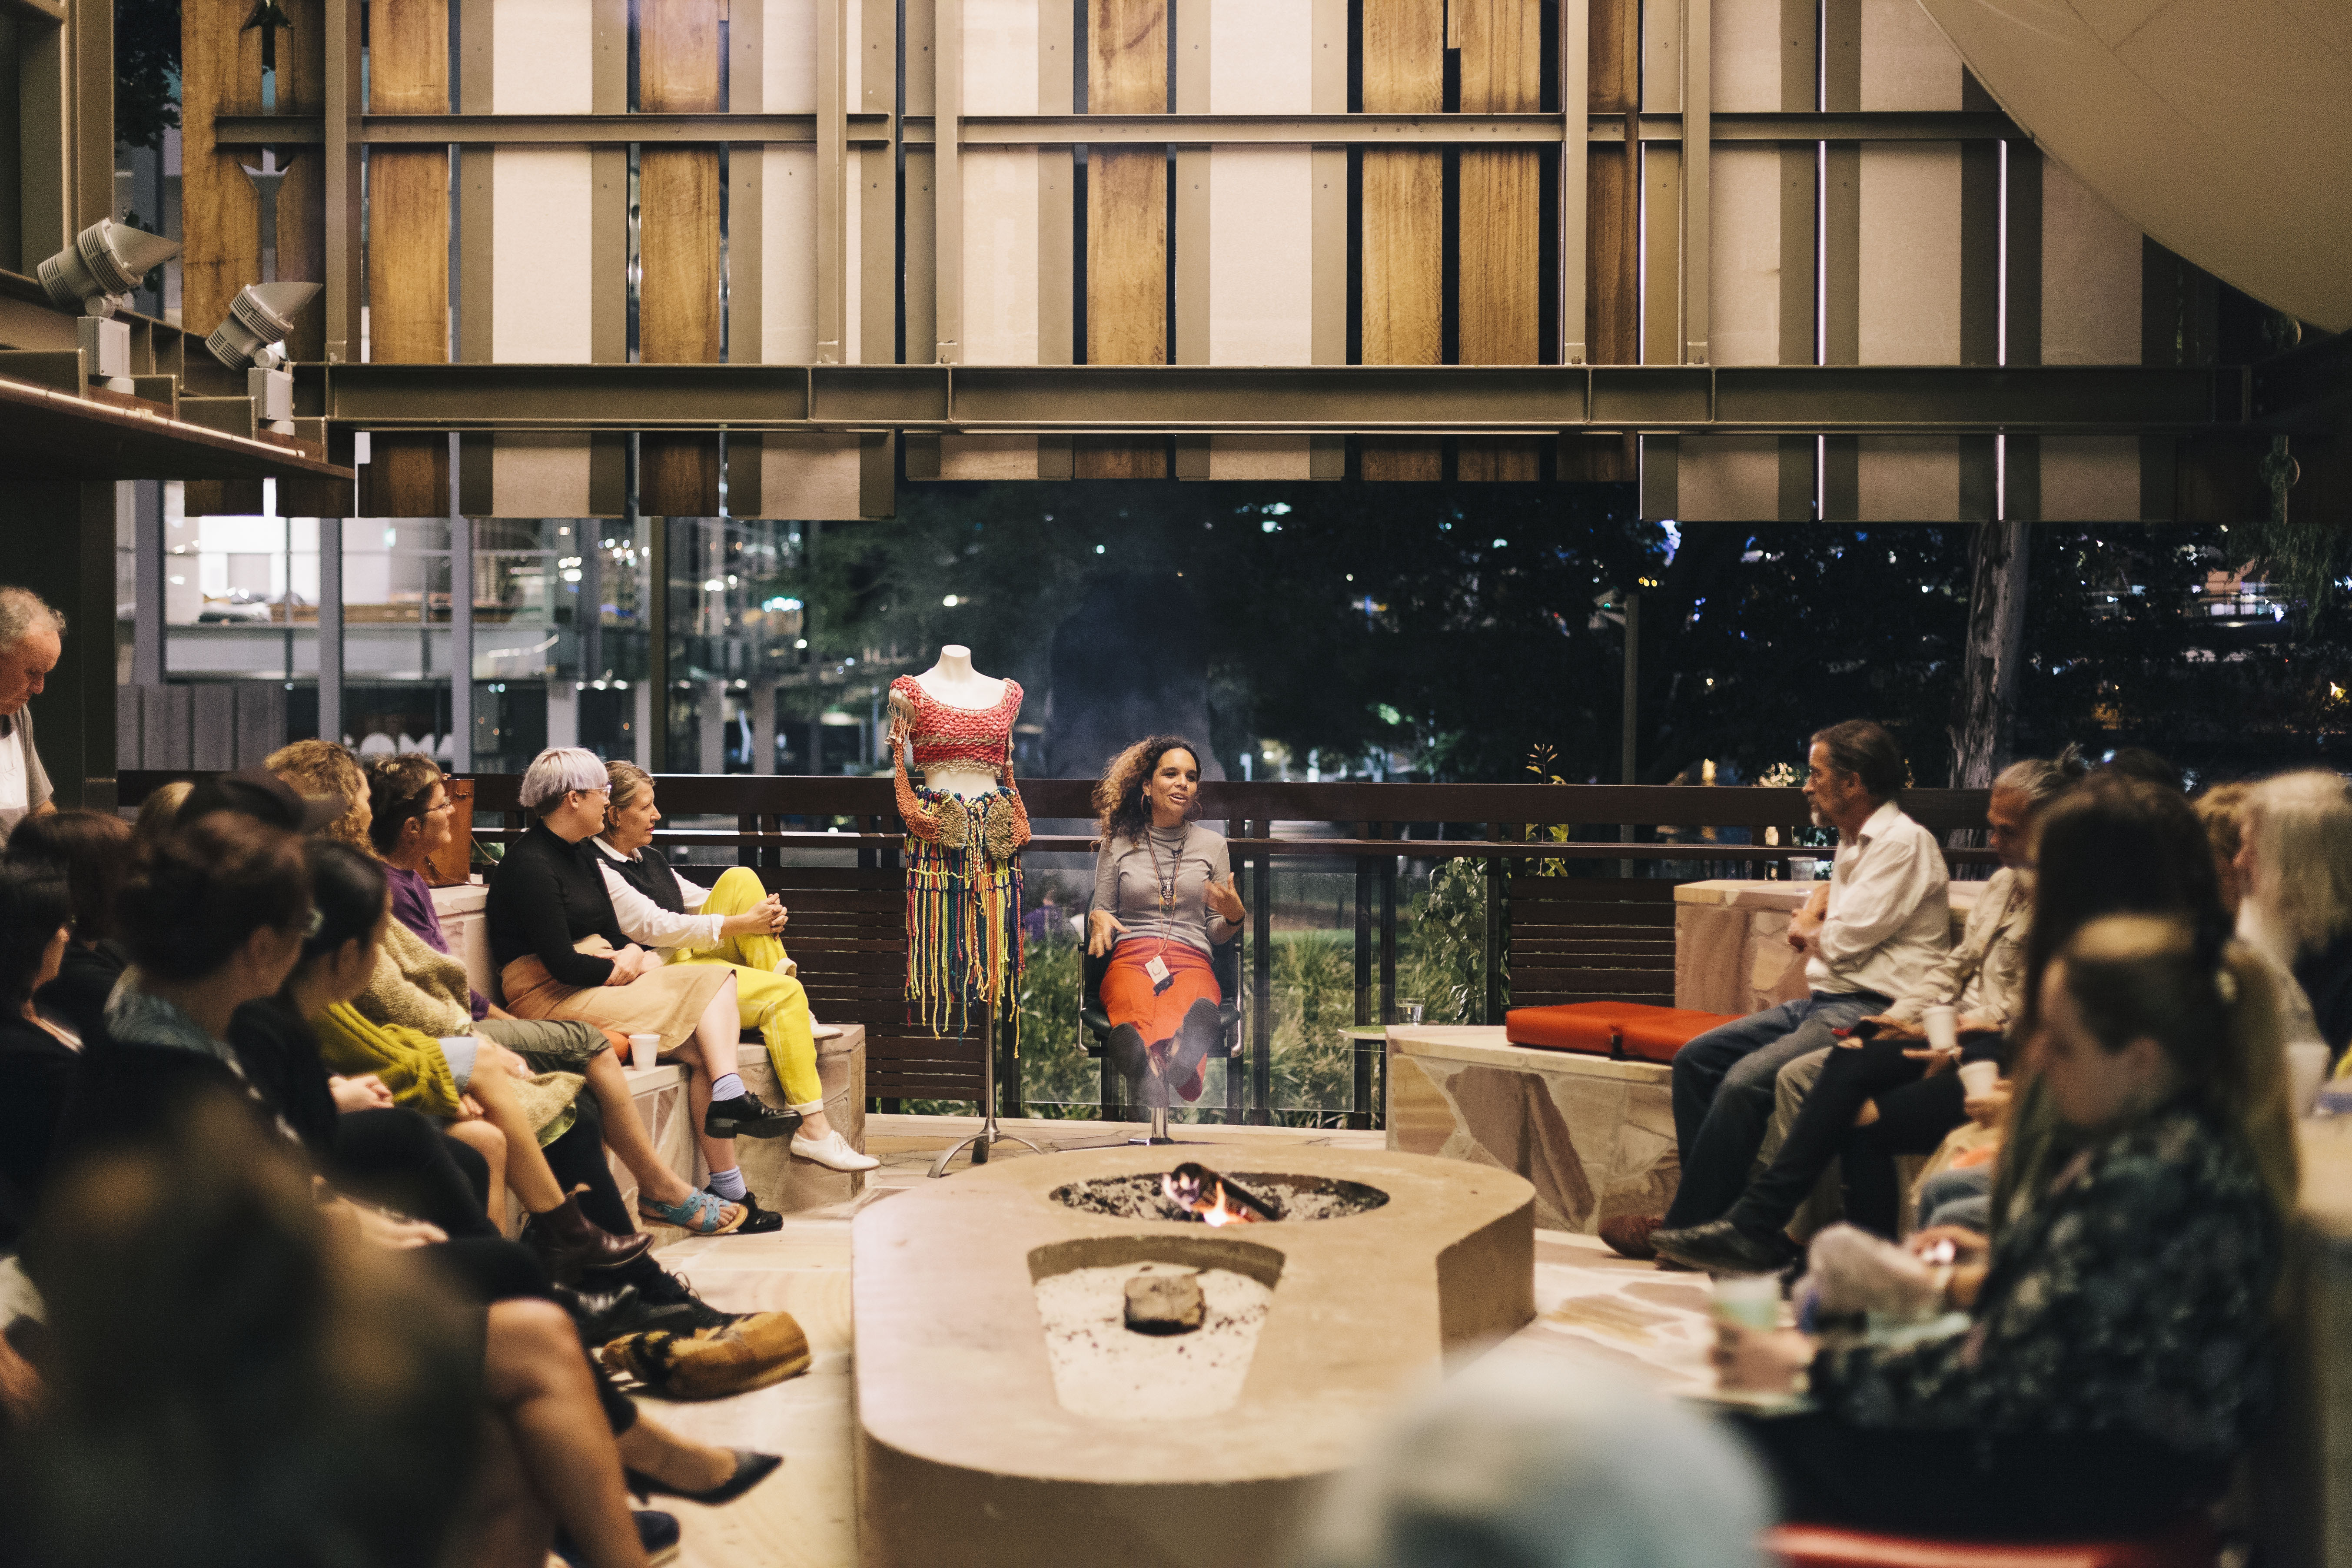 People gathered in State Library's Talking Circle to listen to Elisa Jane Carmichael. Photo by Joe Ruckli.